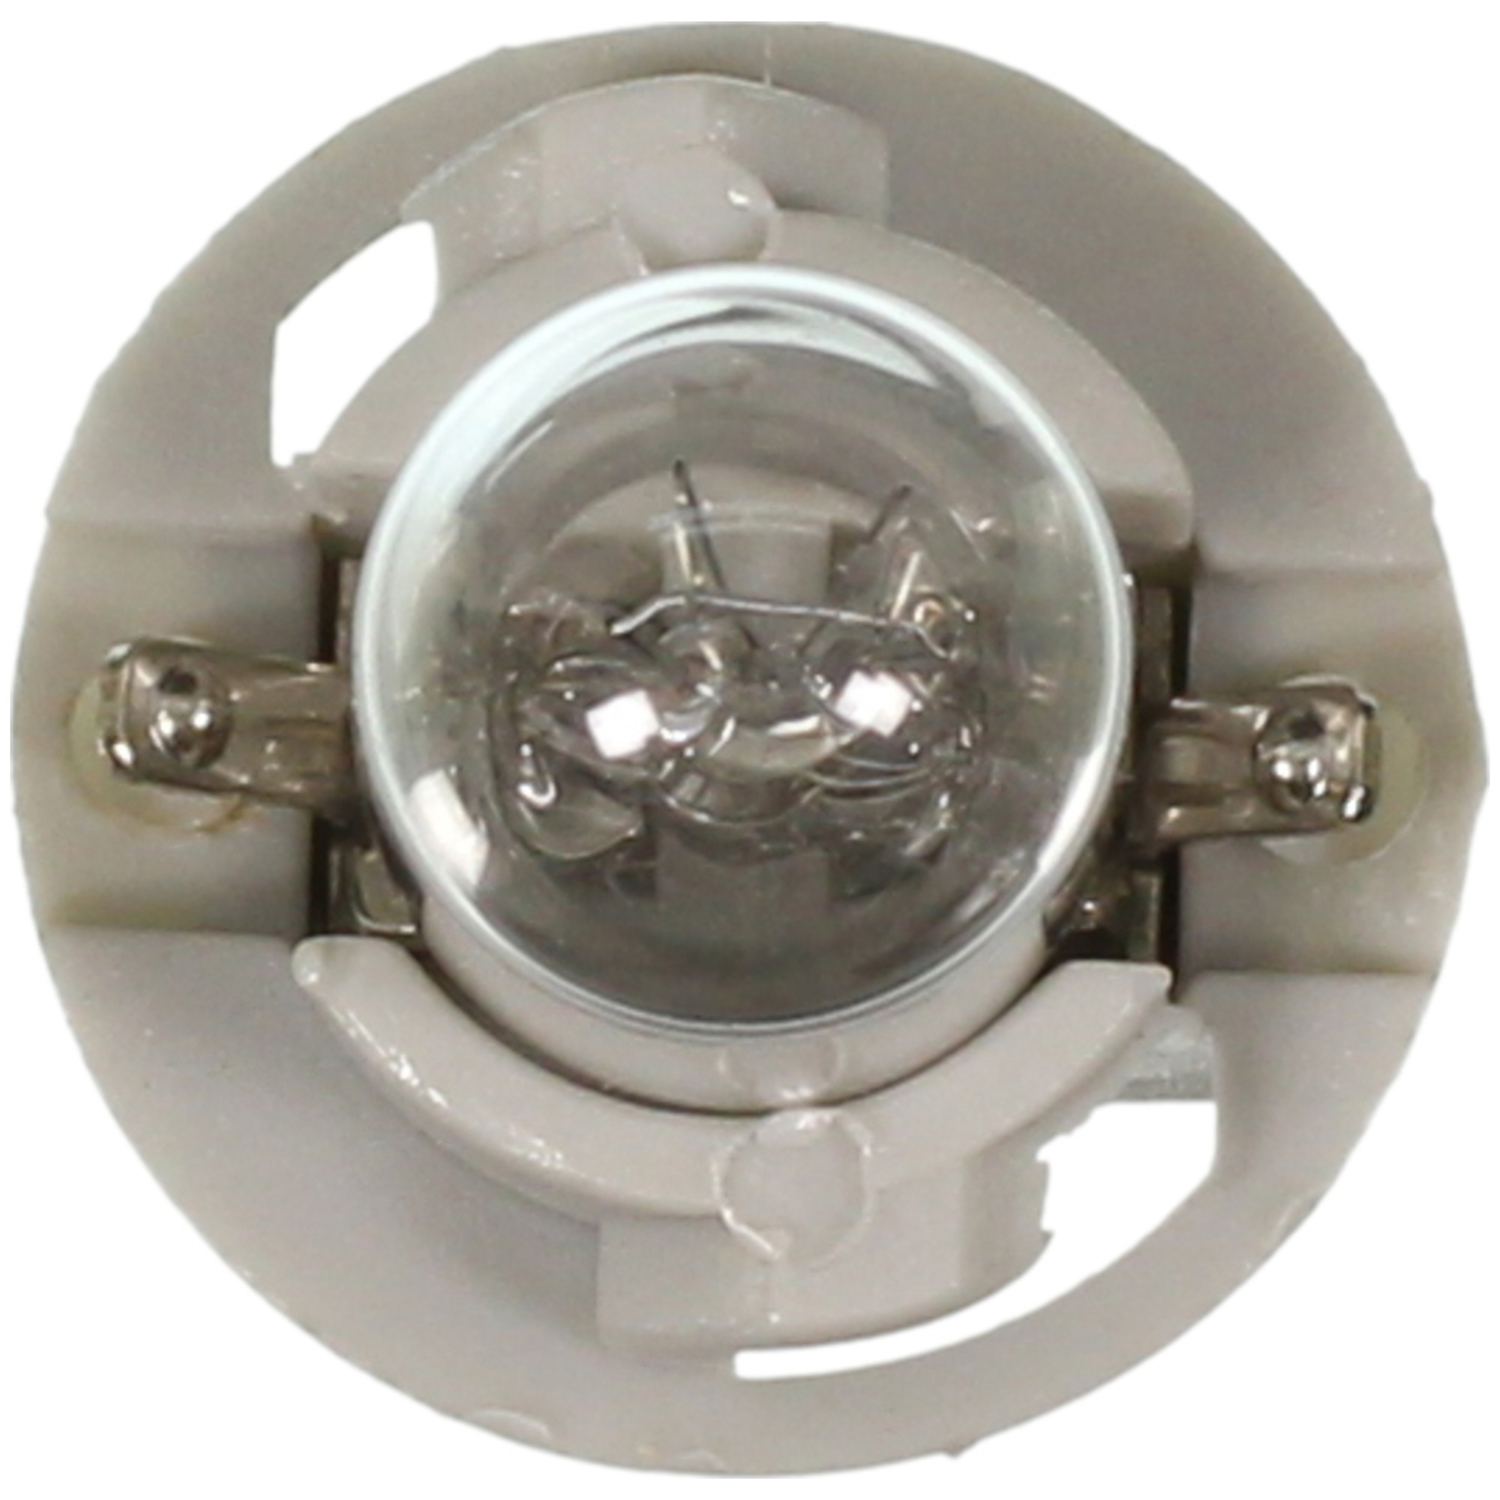 instrument panel light bulb wagner lighting pc194 ebay. Black Bedroom Furniture Sets. Home Design Ideas